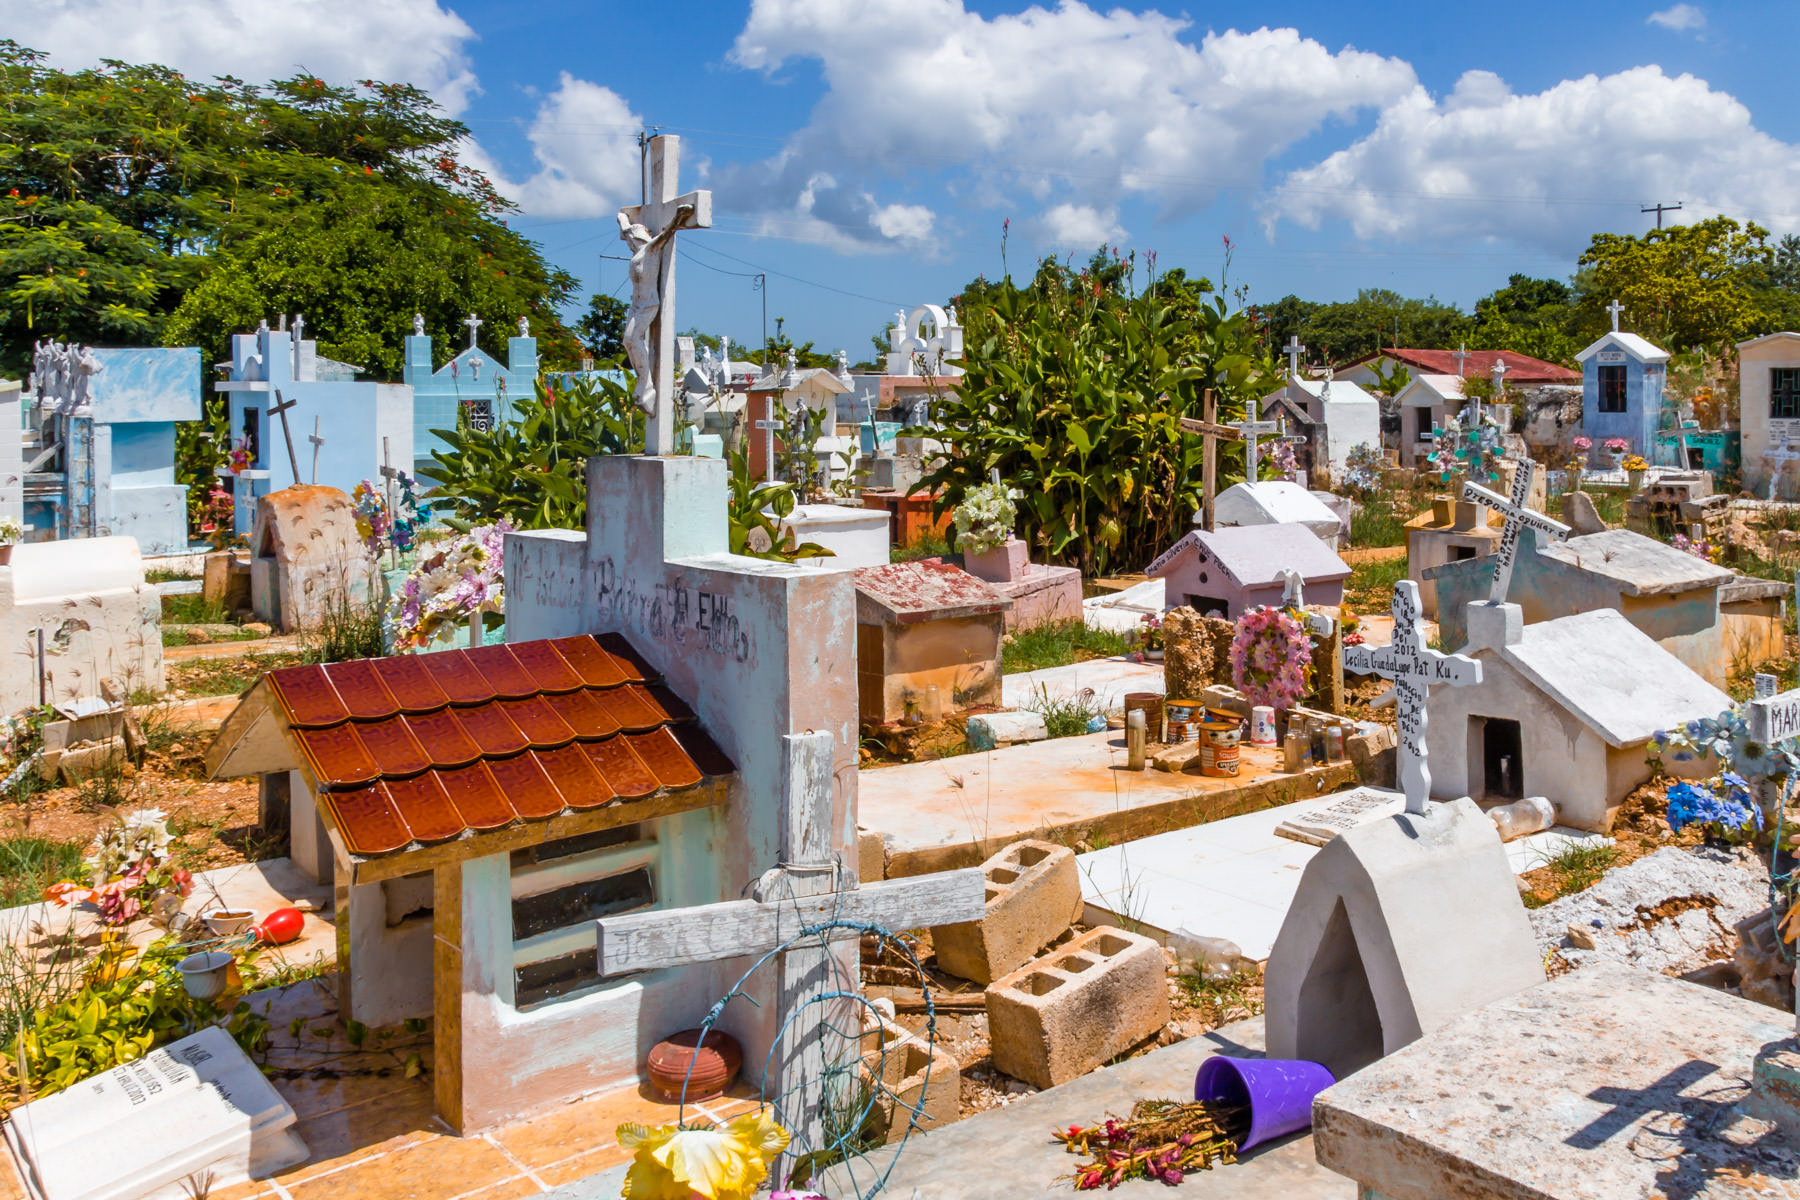 Colorful graves in a cemetery in the small village of Dzemul, Yucatan, Mexico.